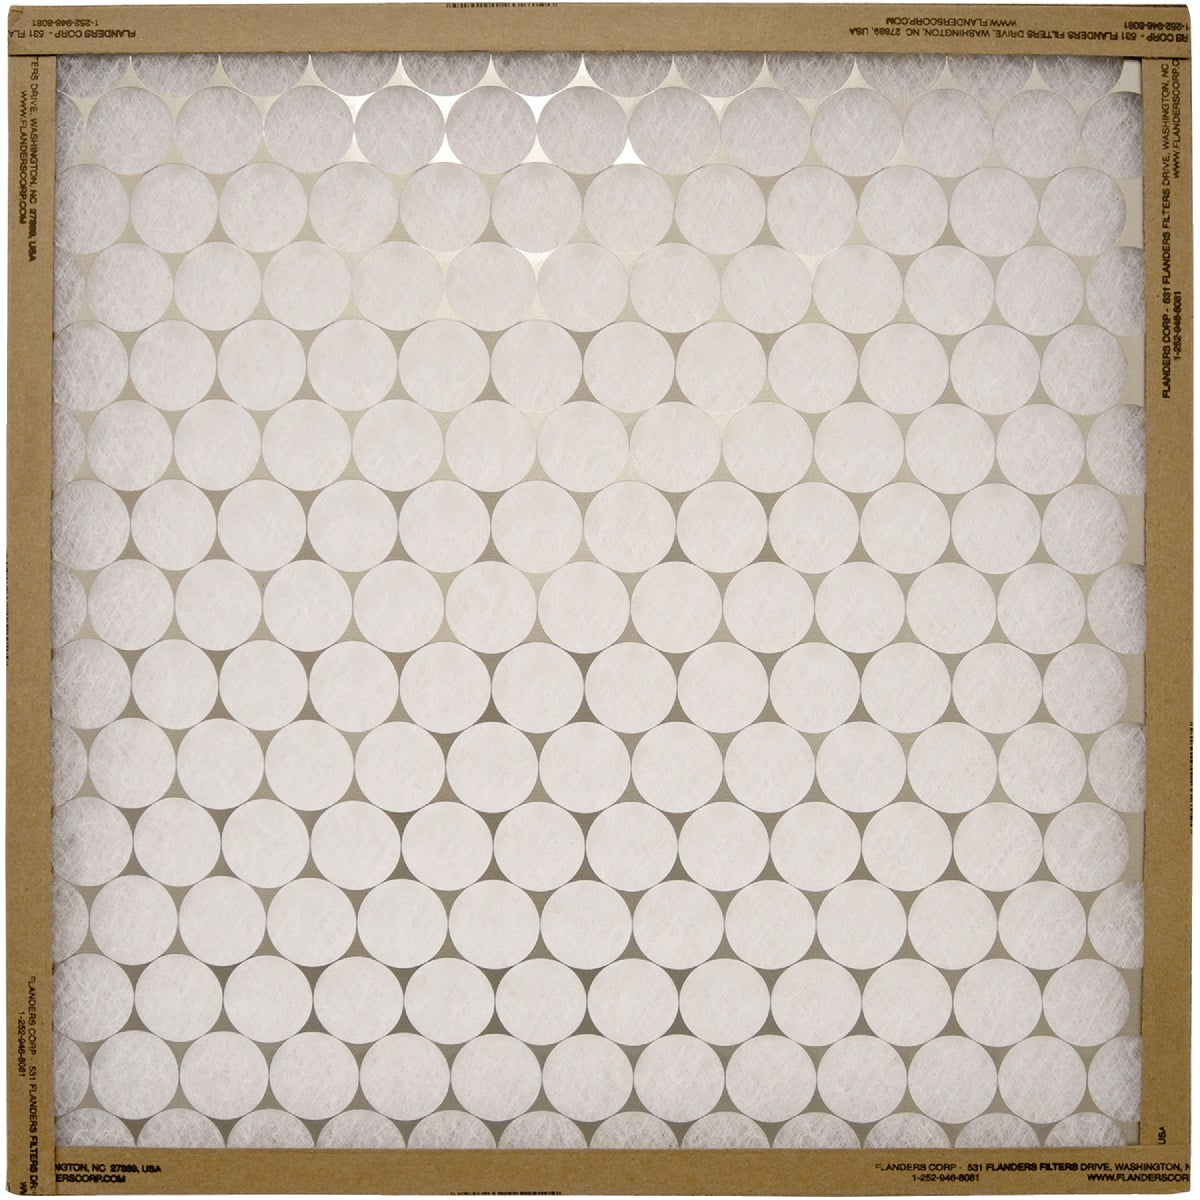 14X24 FURNACE FILTER - 10255.011424 by Flanders Corp